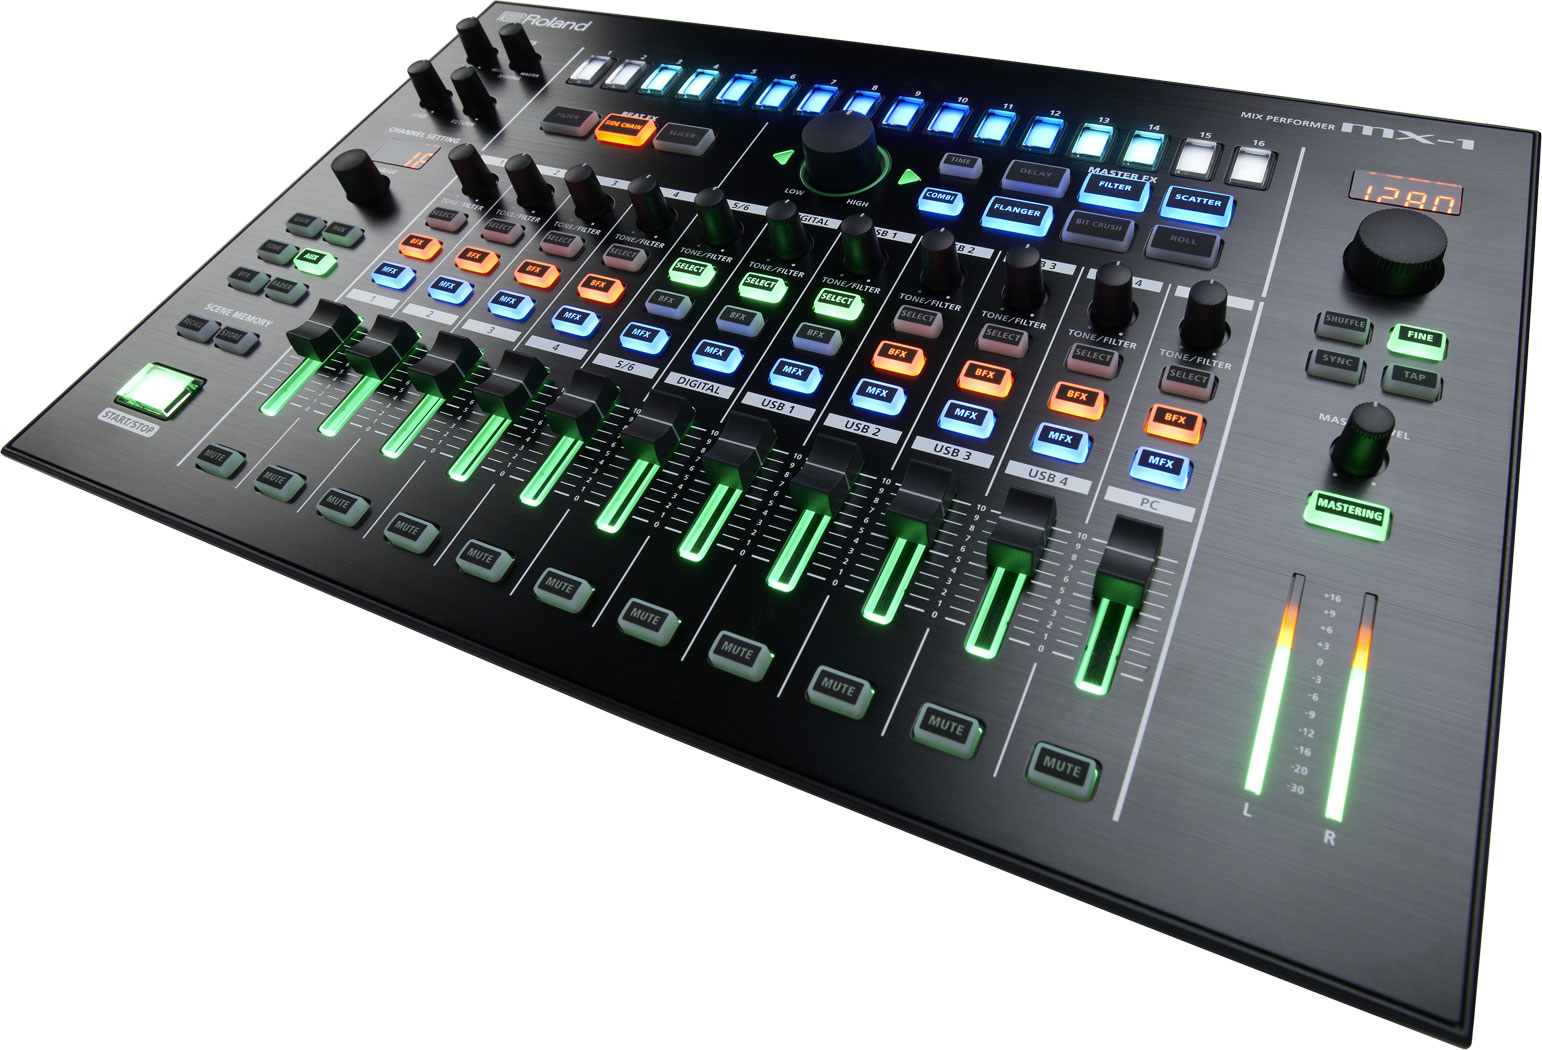 roland mx-1 aira performance mix controller